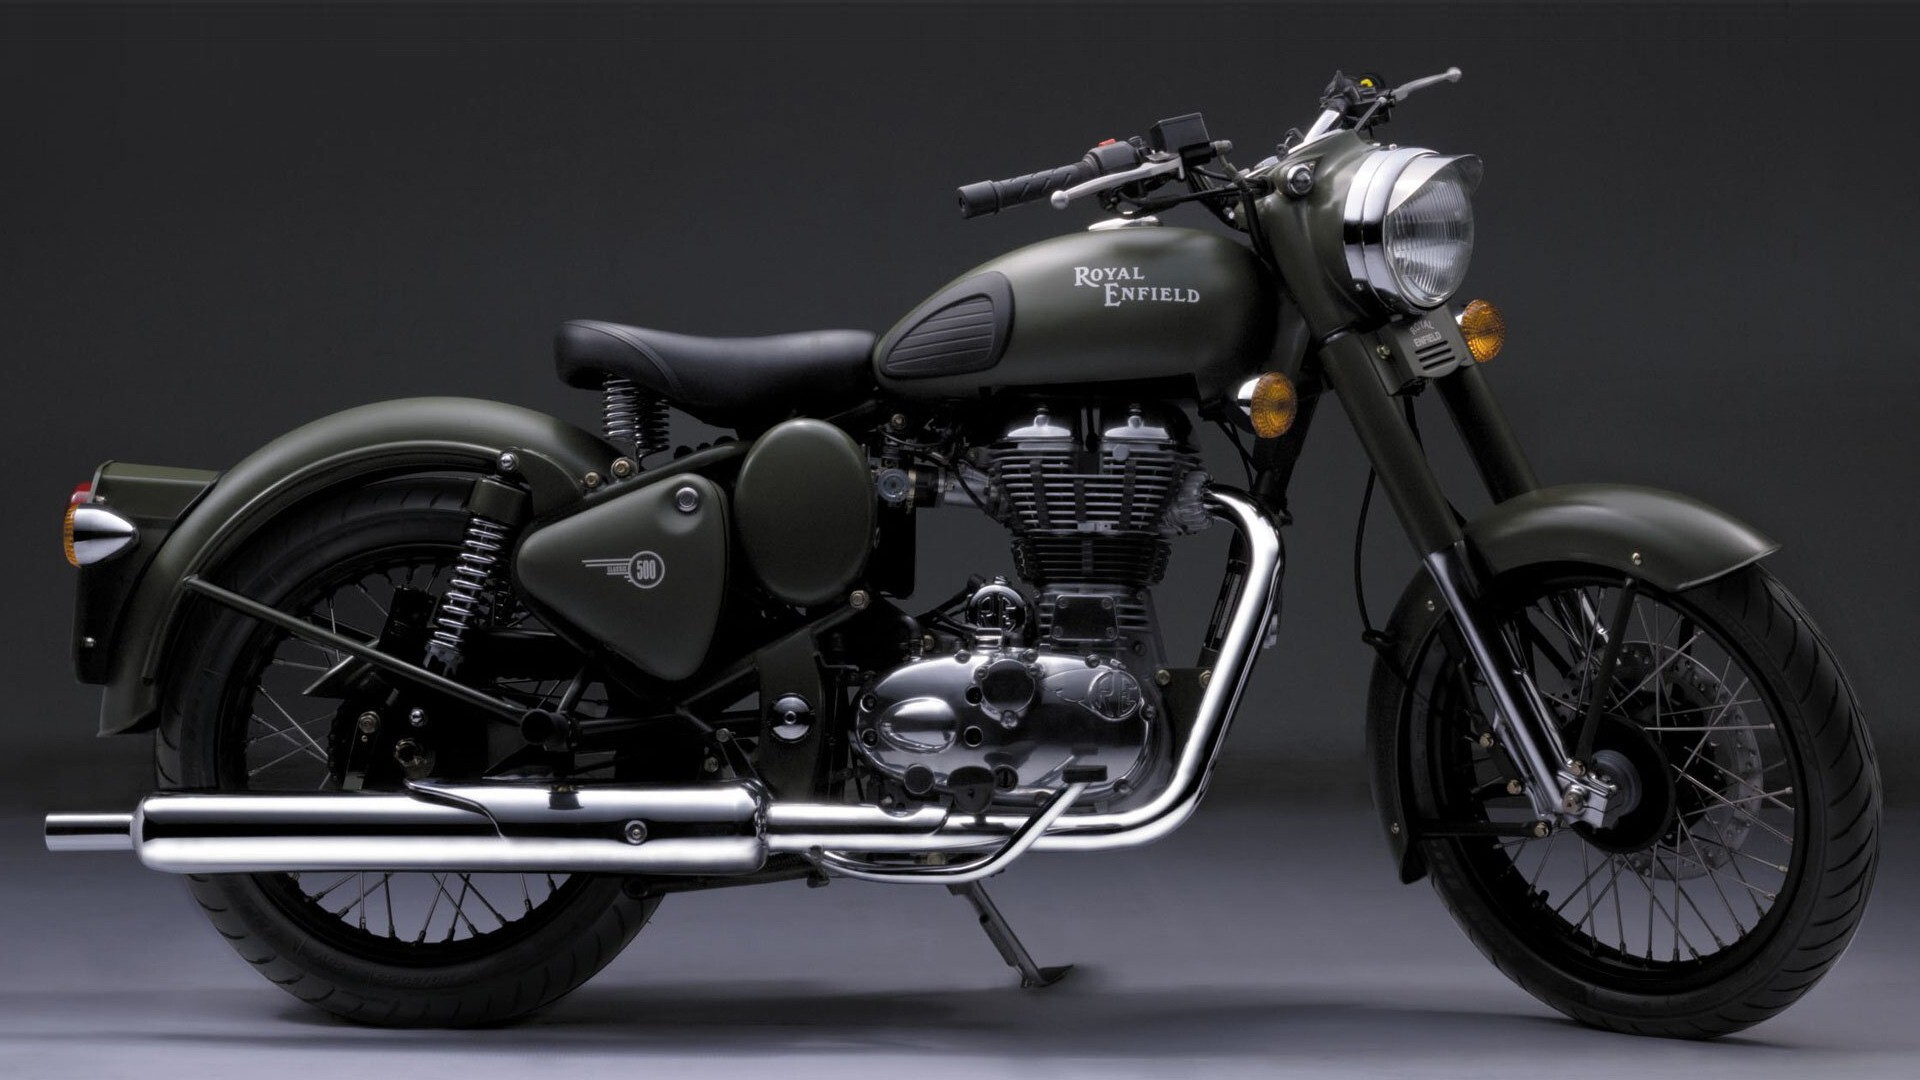 Royal Enfield cc Bike Images Price in India Specifications News